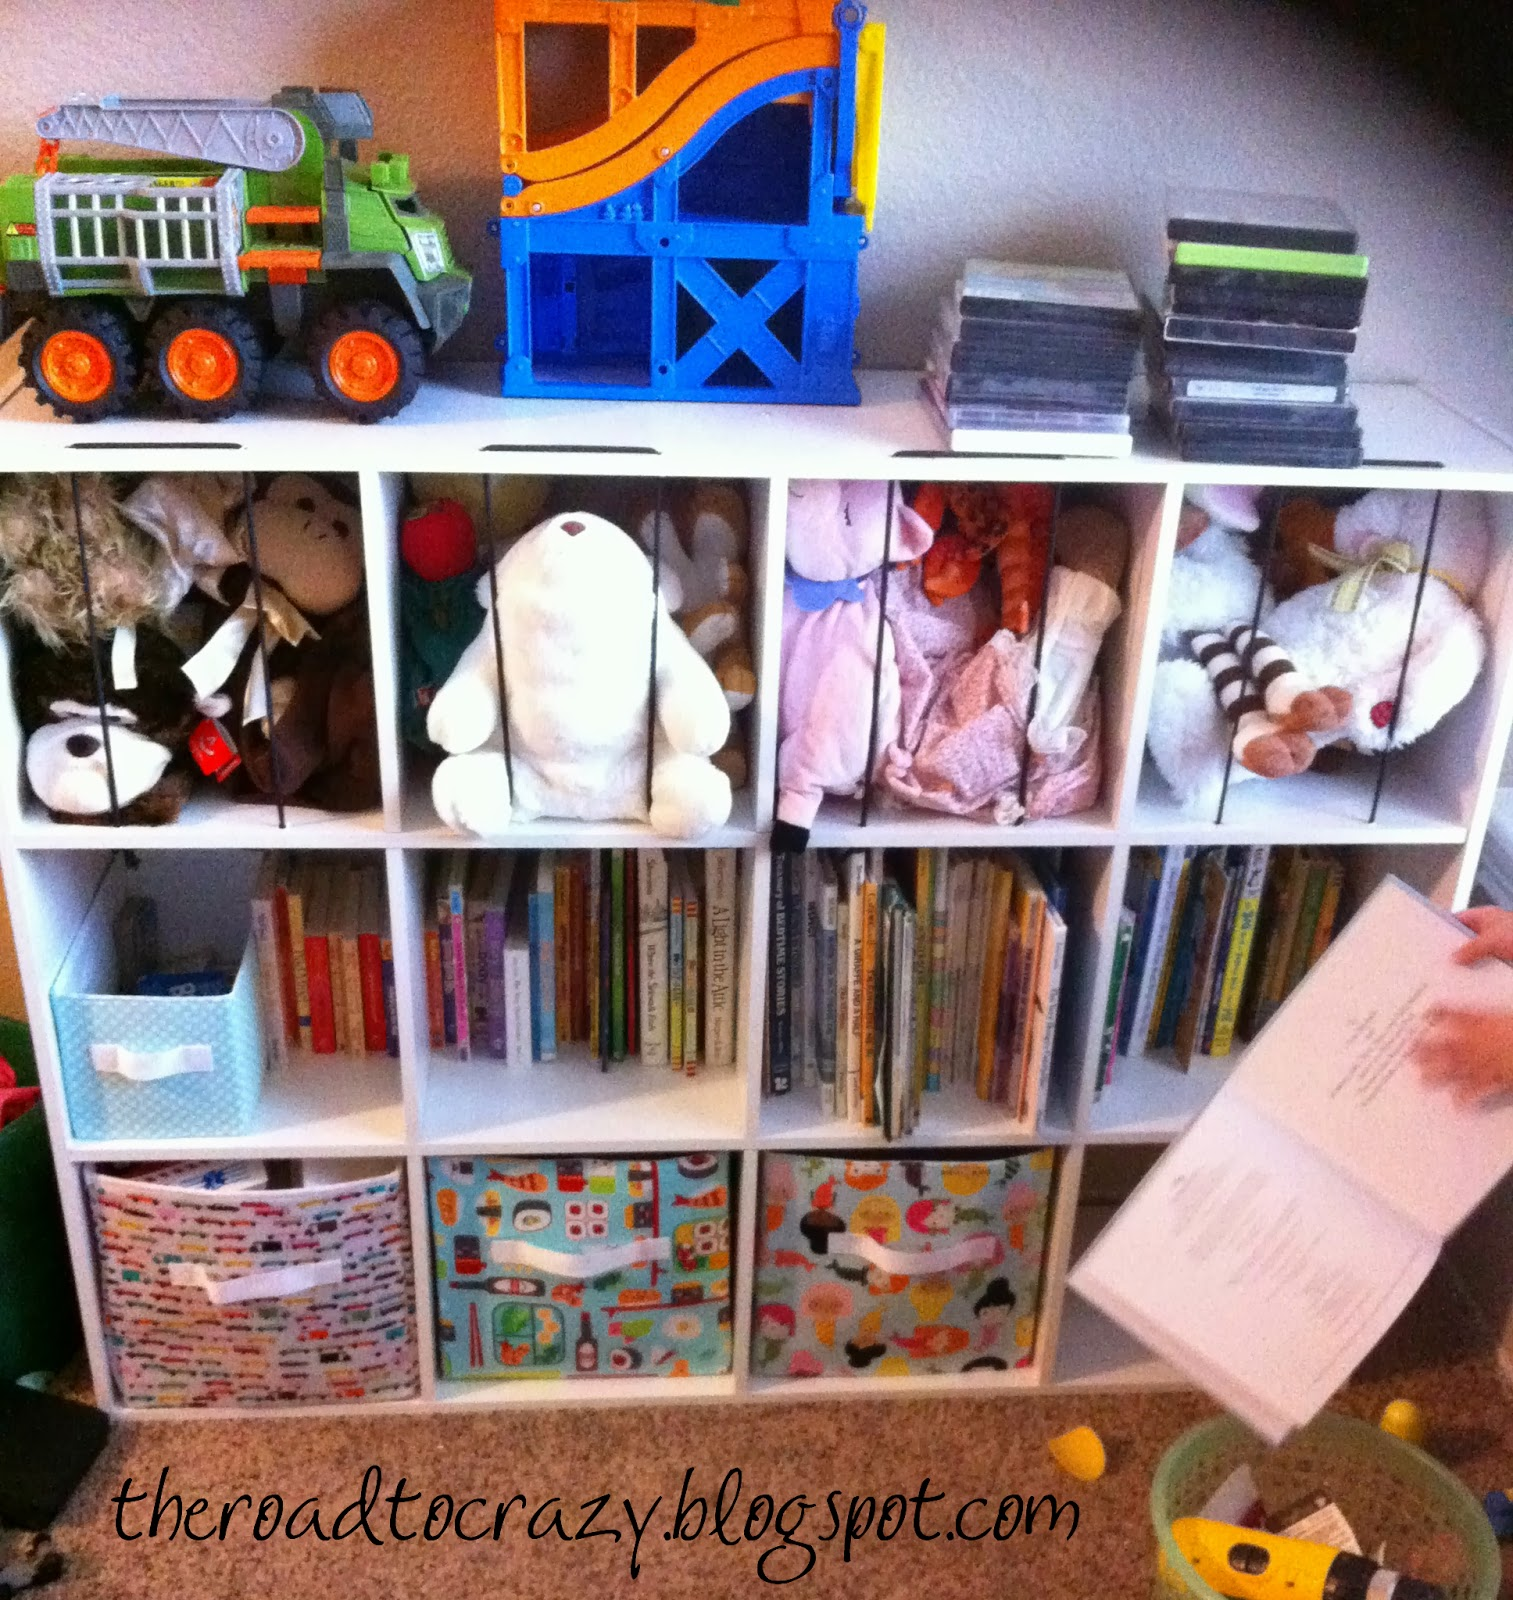 Stuffed Animal Toy Storage: The Road To Crafty: Toy Storage Part 1